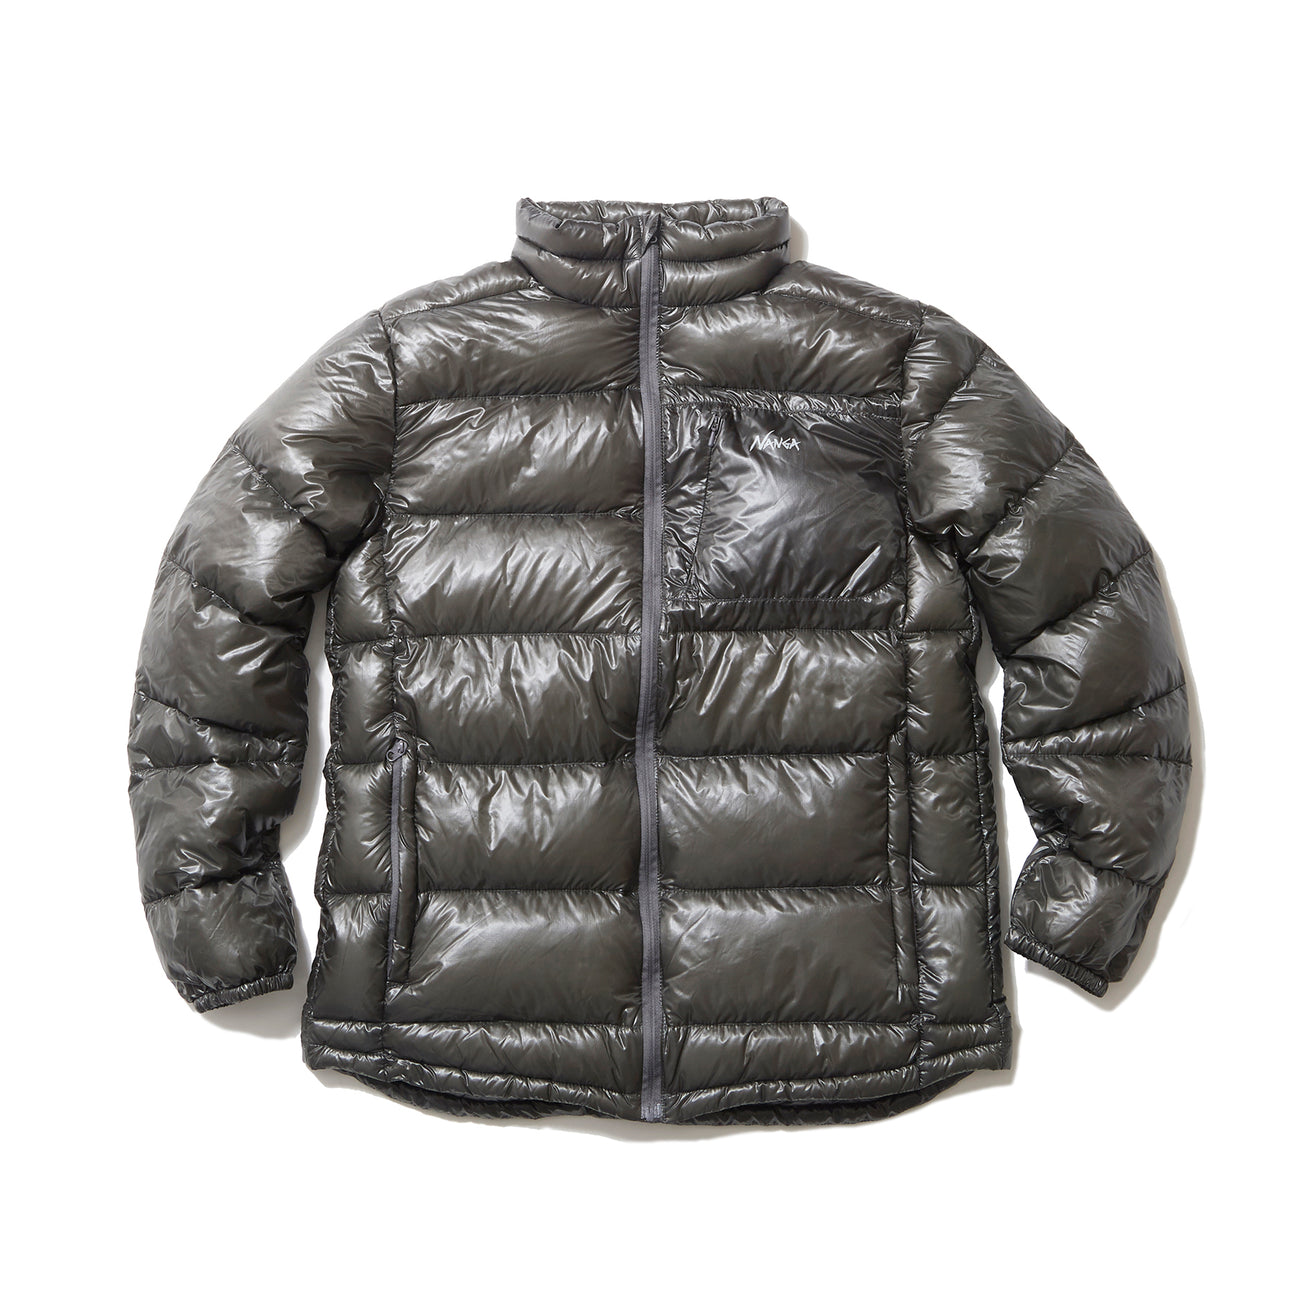 https://store.nanga.jp/collections/wear/products/2019super-light-down-jacket